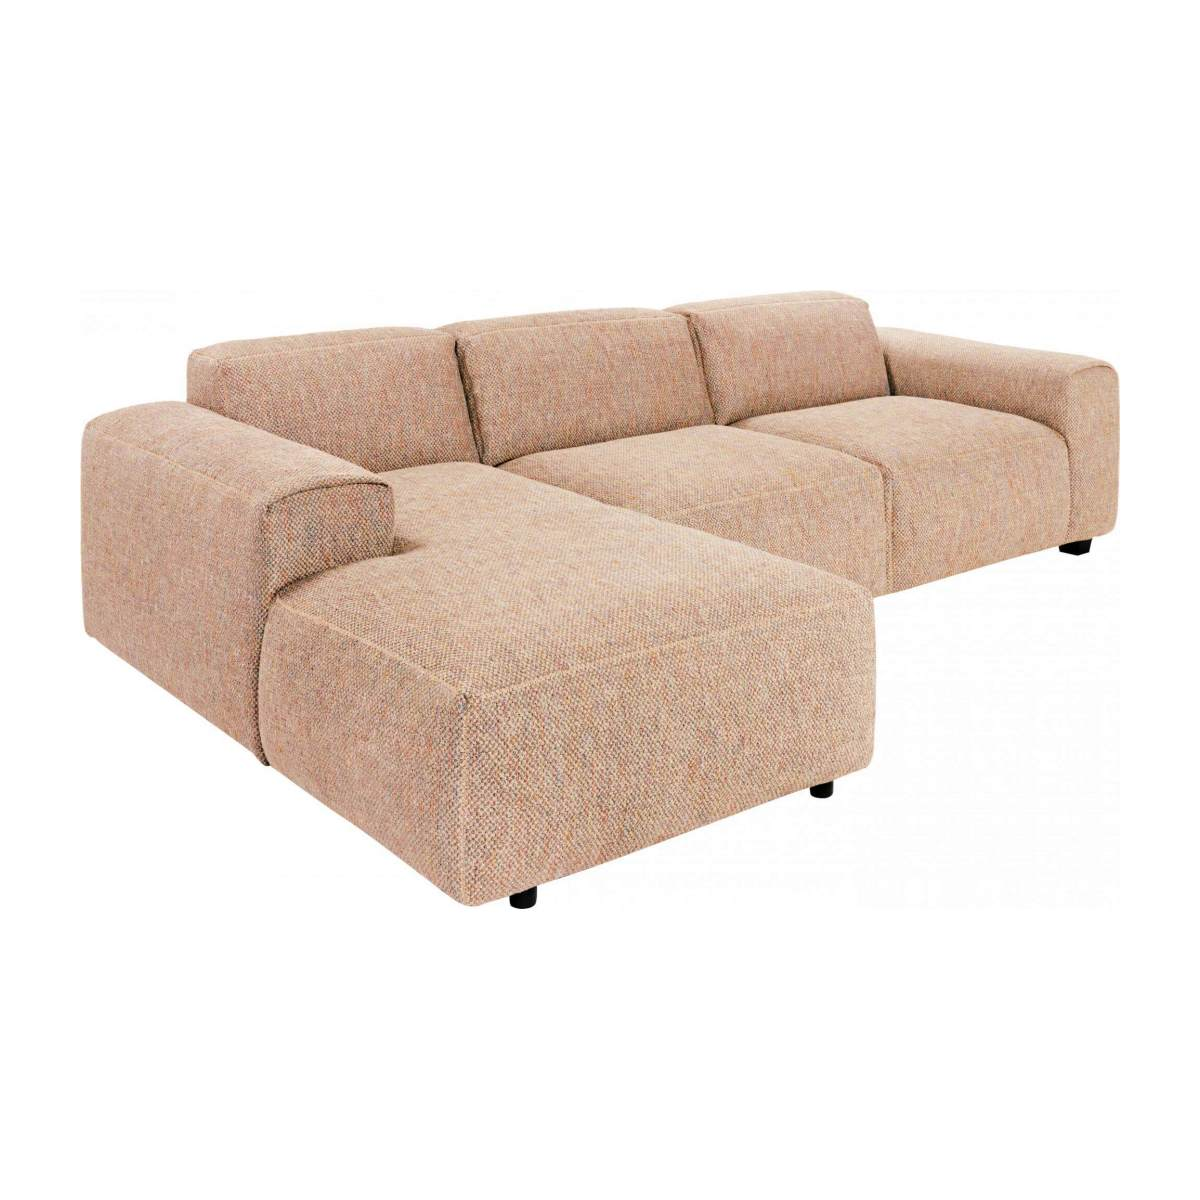 3-Sitzer Sofa mit Chaiselongue links aus Bellagio-Stoff - Orange n°4